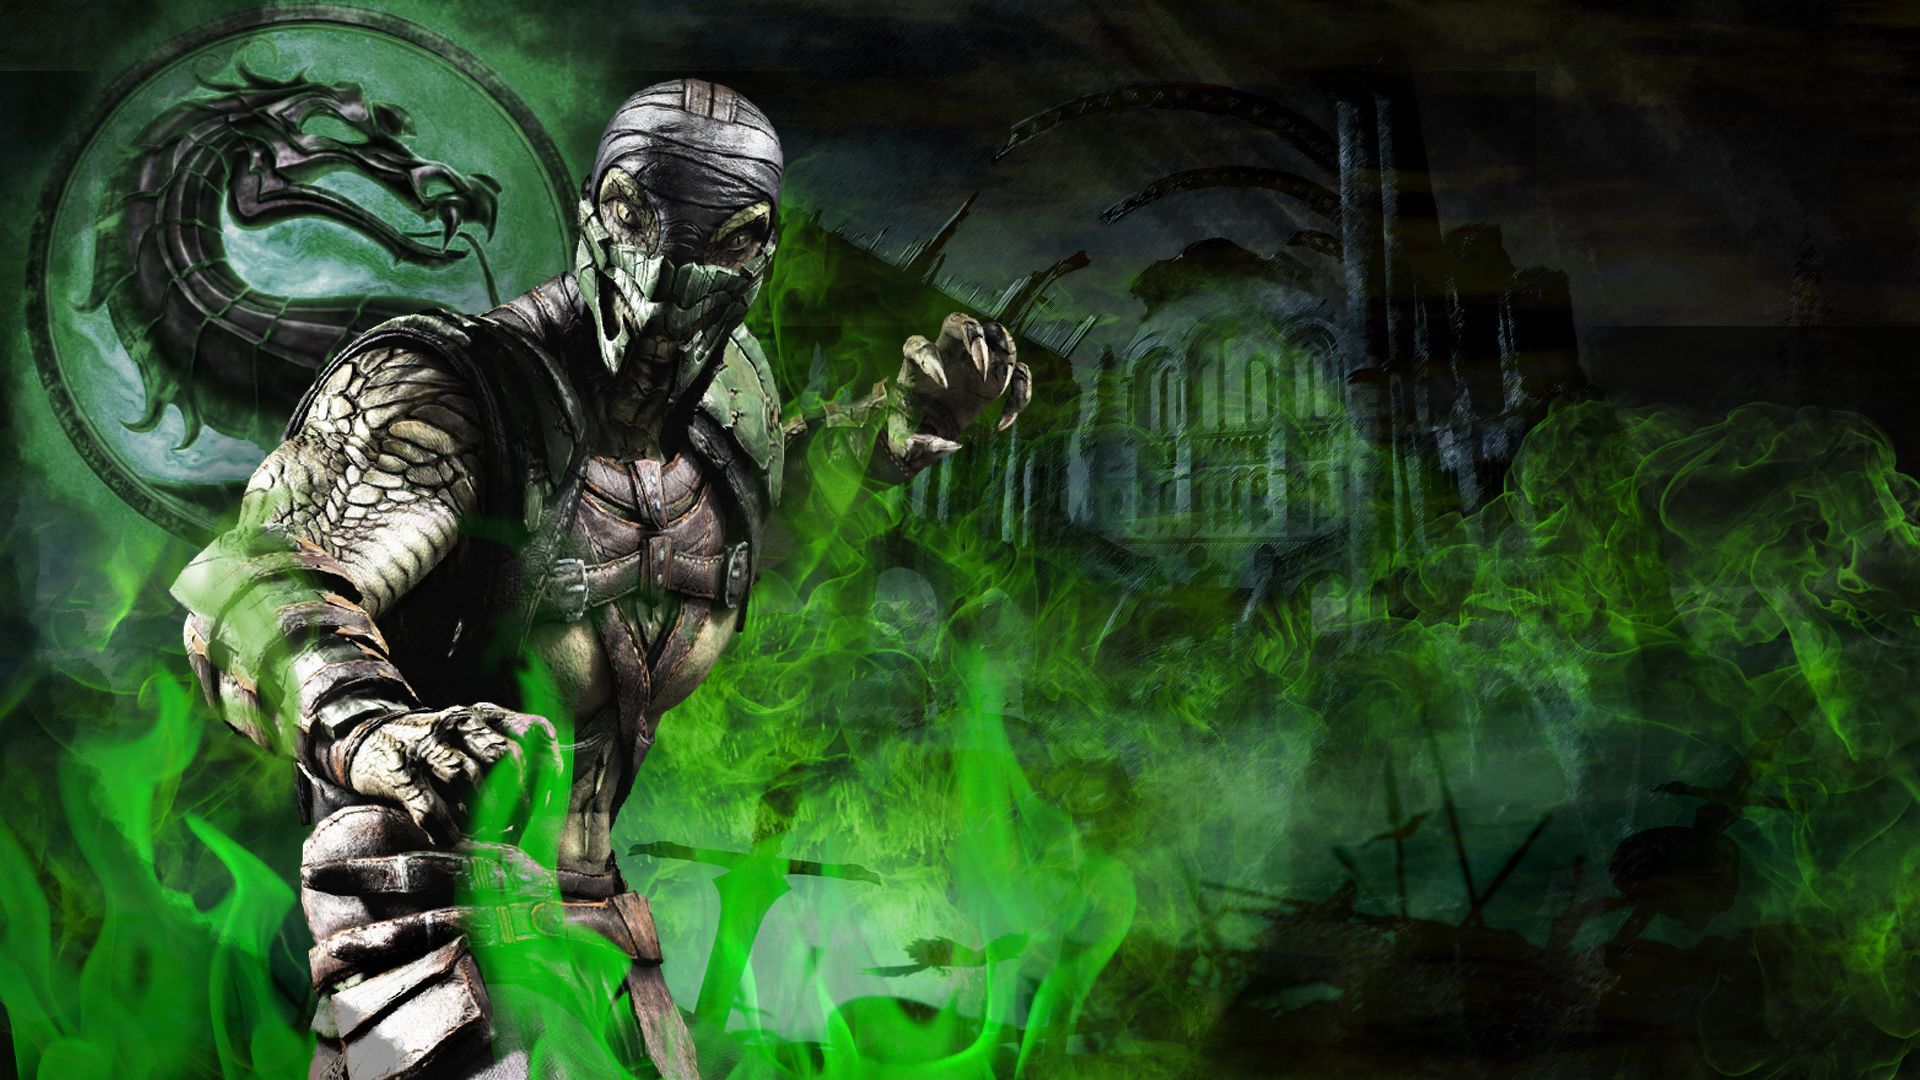 Mortal Kombat Reptile Wallpapers Top Free Mortal Kombat